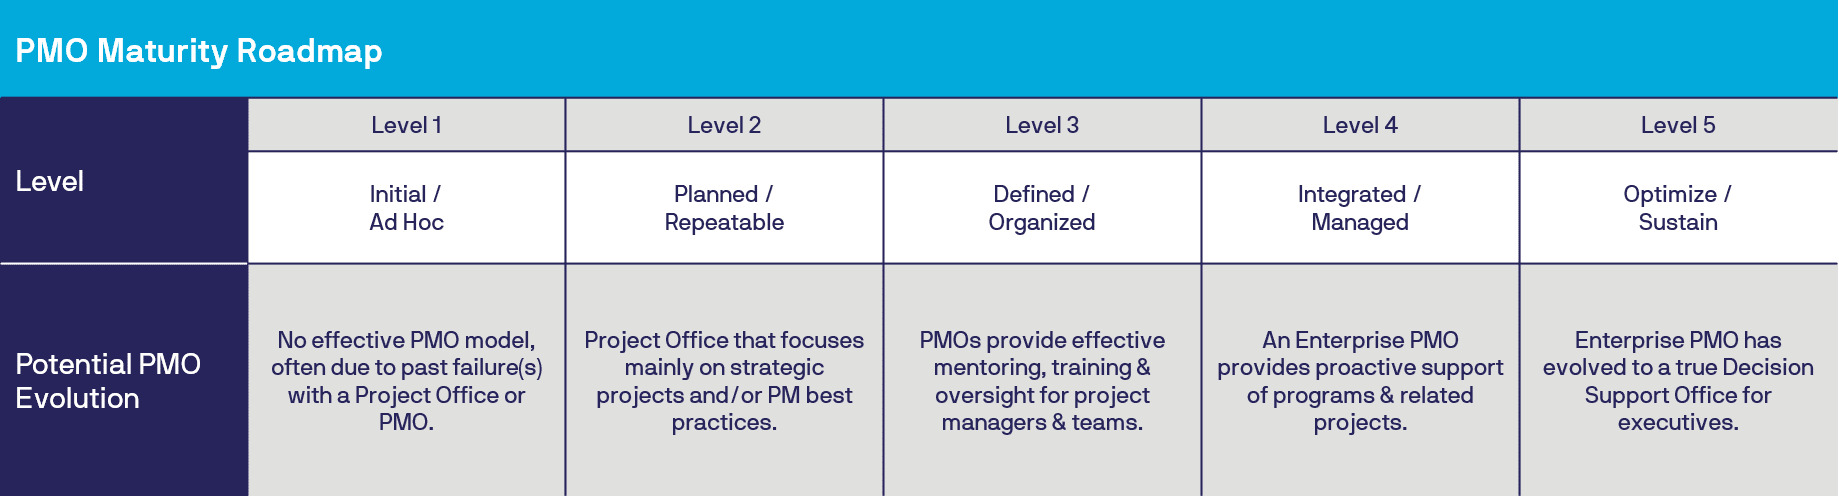 PMO Maturity Roadmap